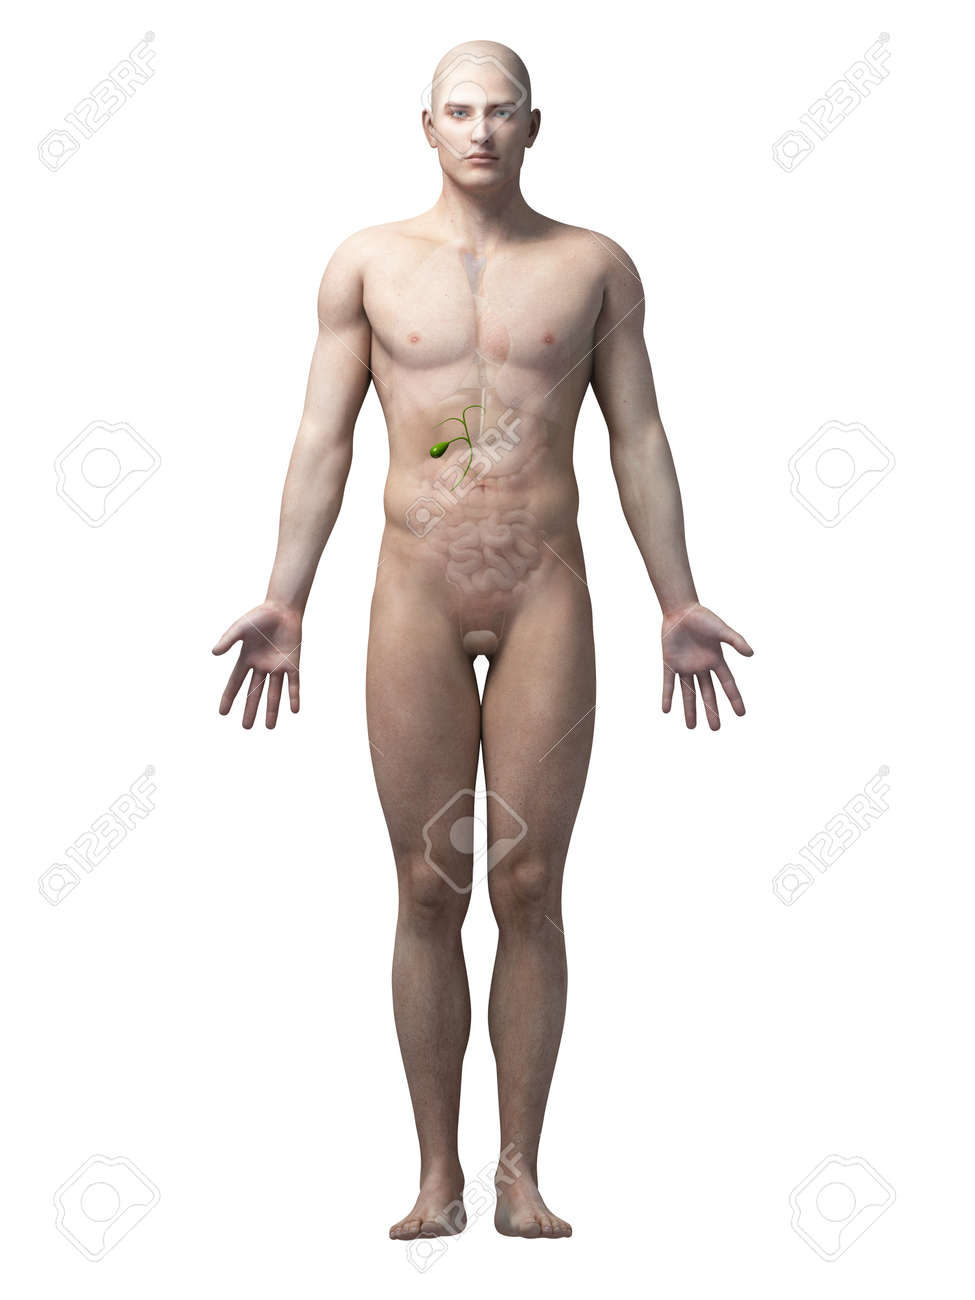 Male Anatomy Illustration - The Gallbladder Stock Photo, Picture And ...